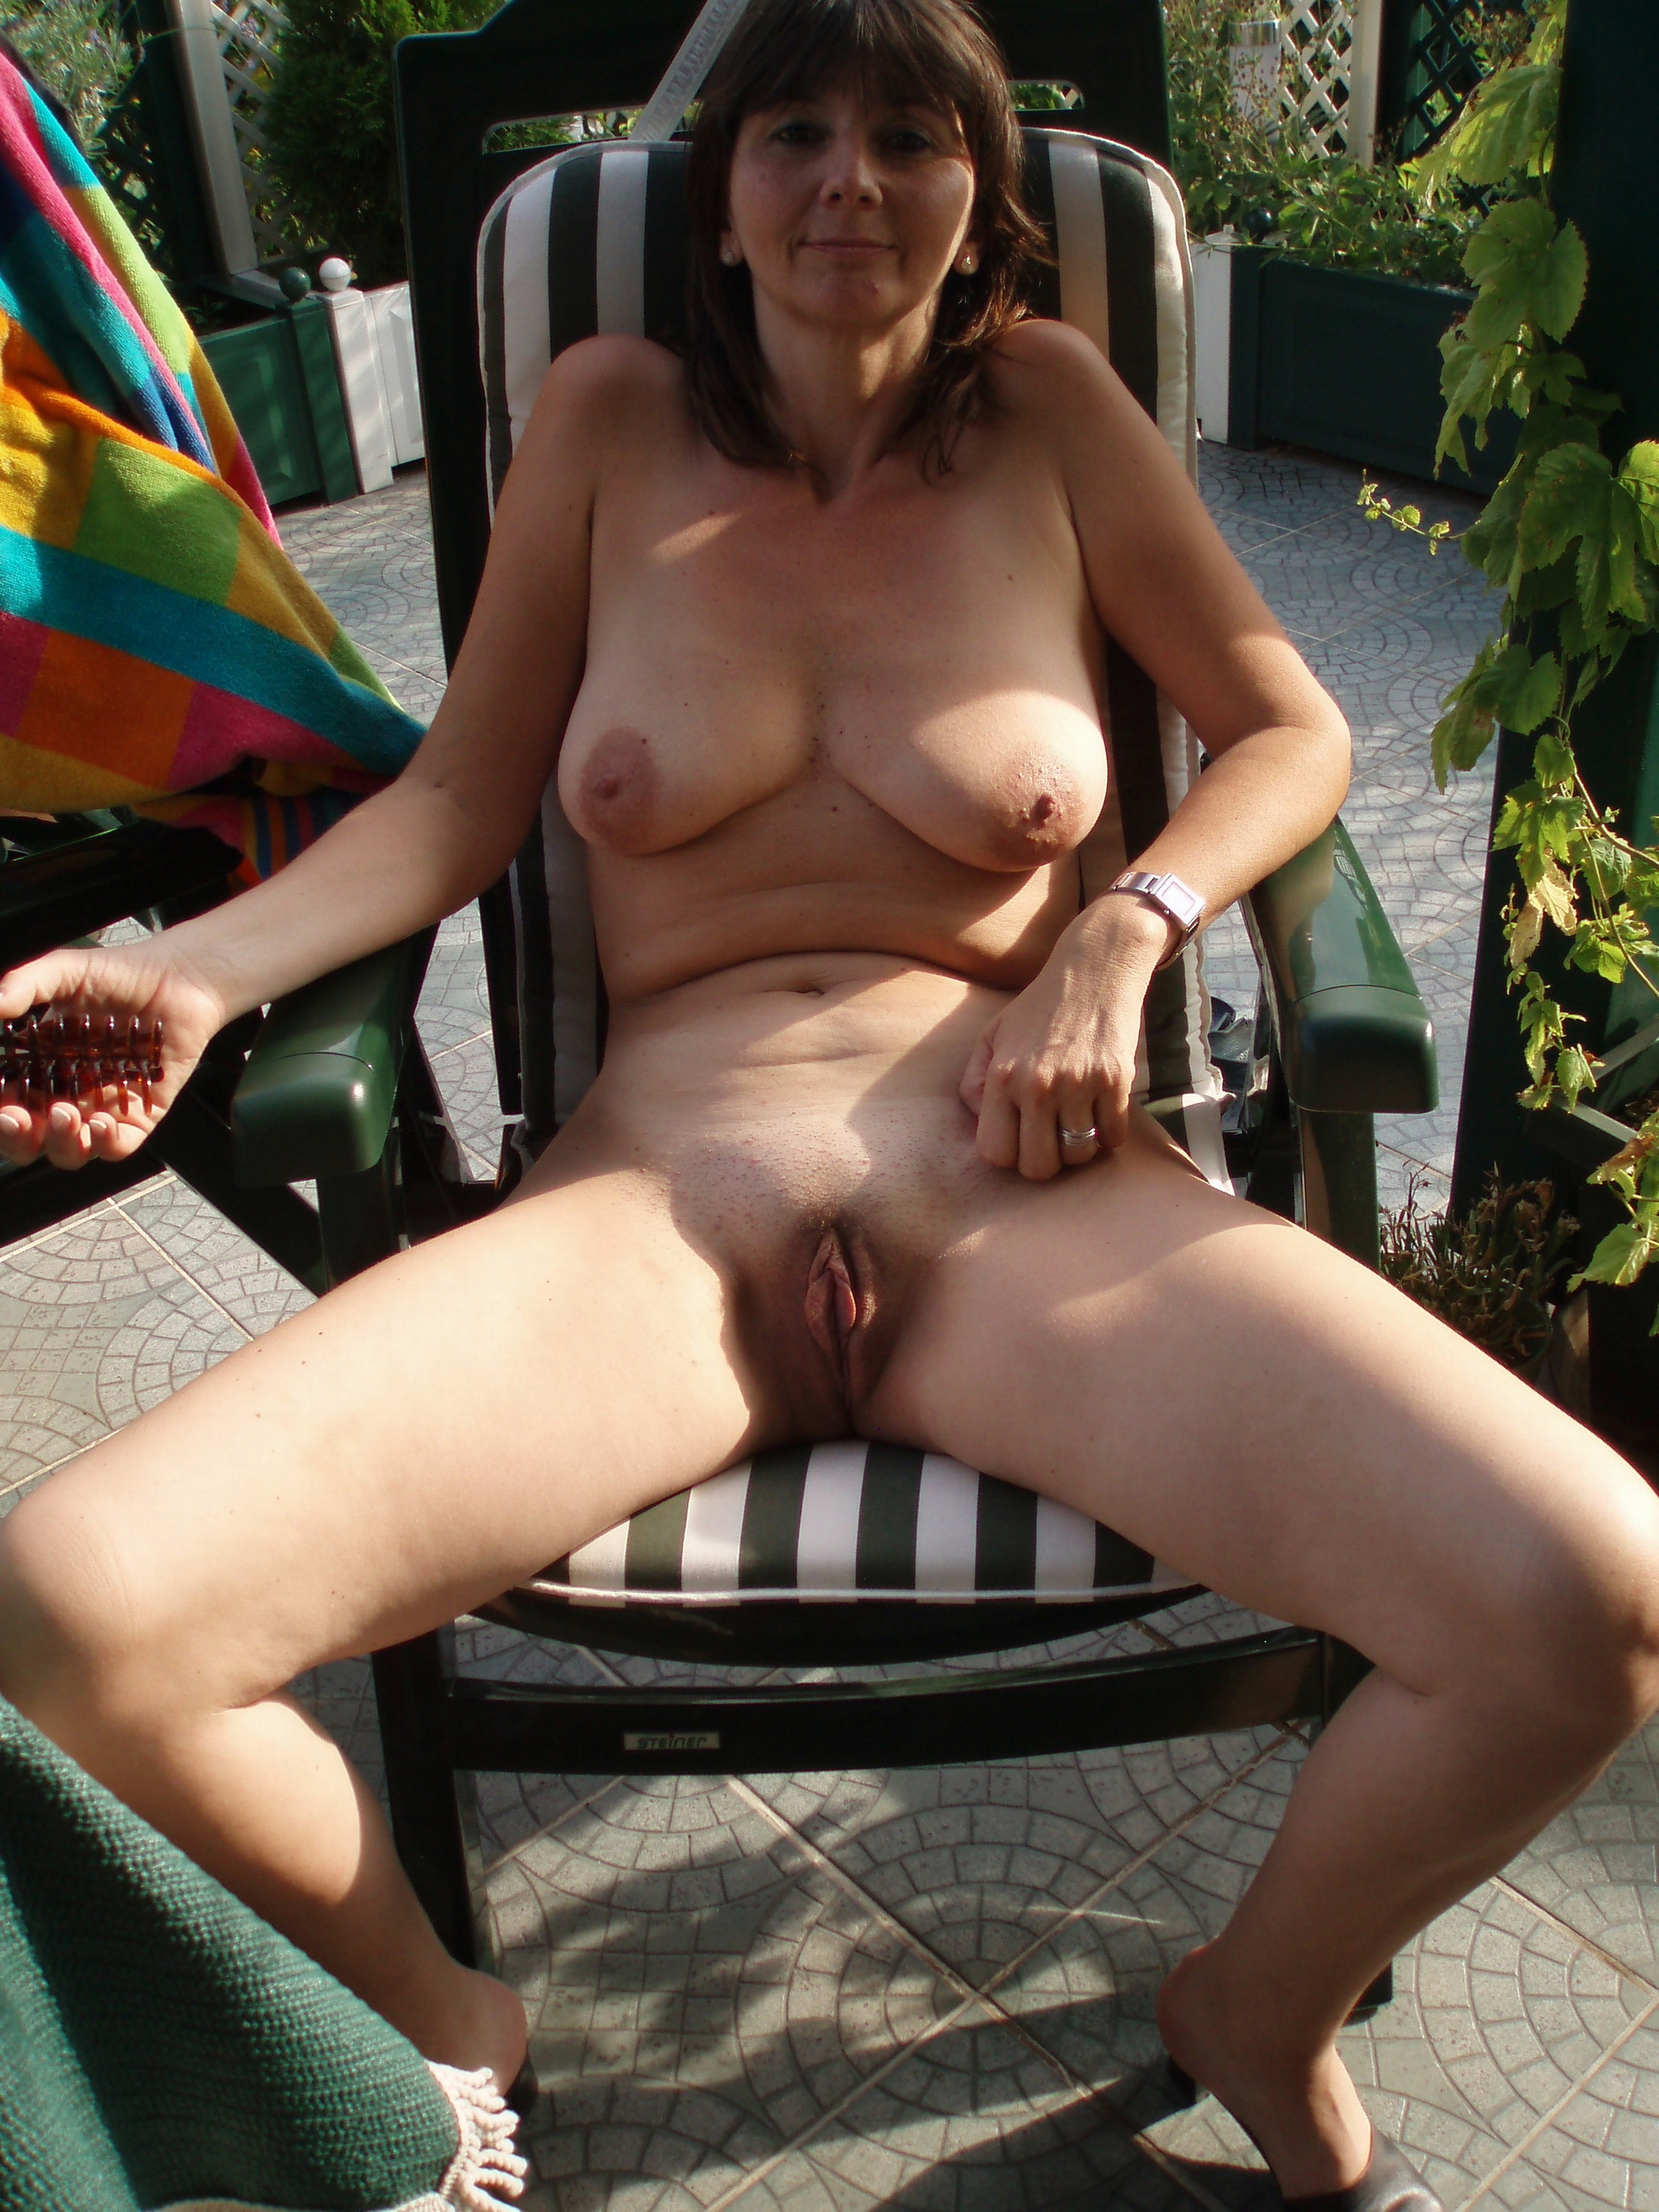 Free Hairy, Saggy Tits, Outdoor Pictures